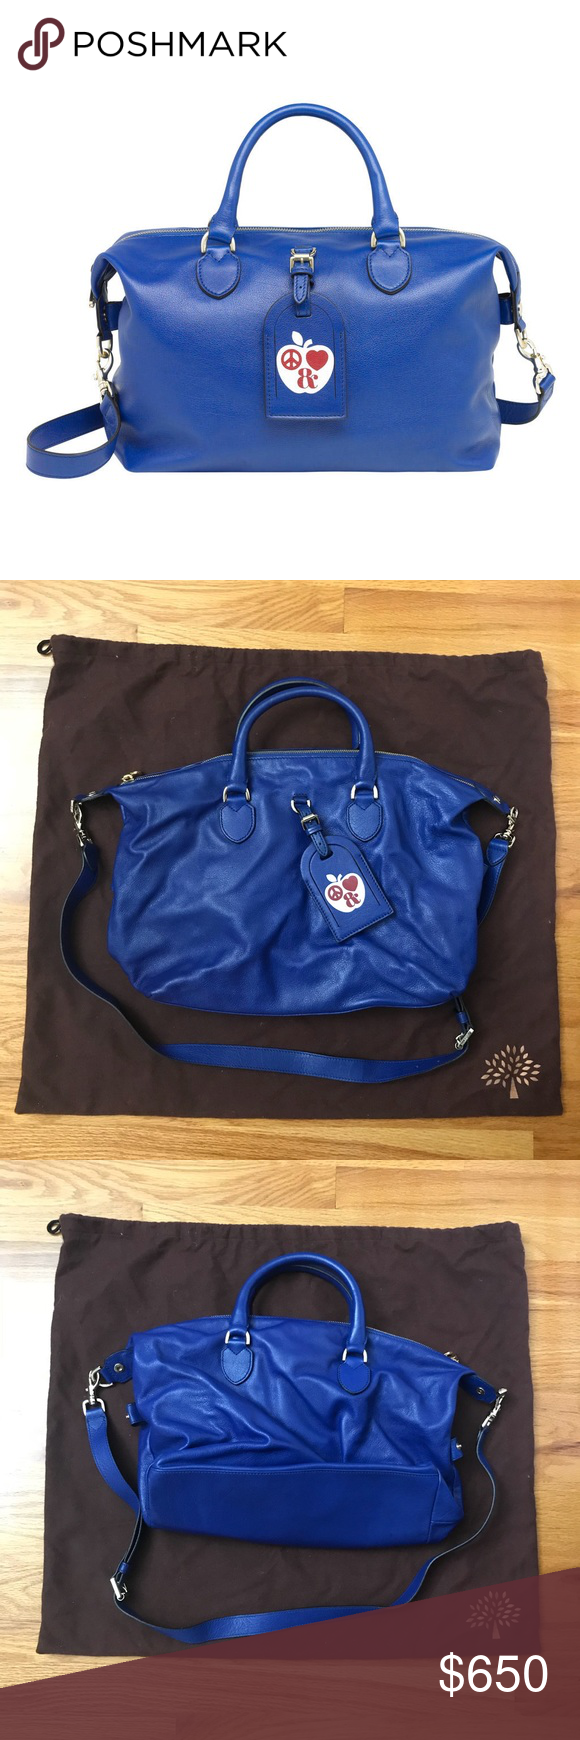 Authentic Mulberry New York Clipper Glossy Buffalo Authentic Mulberry New York Clipper Glossy Buffalo bag in blue! Amazing condition, only worn twice, like new! Gold hardware, exclusive Mulberry bag which was made when they opened their store in Soho! Mulberry Bags Satchels #mulberrybag Authentic Mulberry New York Clipper Glossy Buffalo Authentic Mulberry New York Clipper Glossy Buffalo bag in blue! Amazing condition, only worn twice, like new! Gold hardware, exclusive Mulberry bag which was mad #mulberrybag